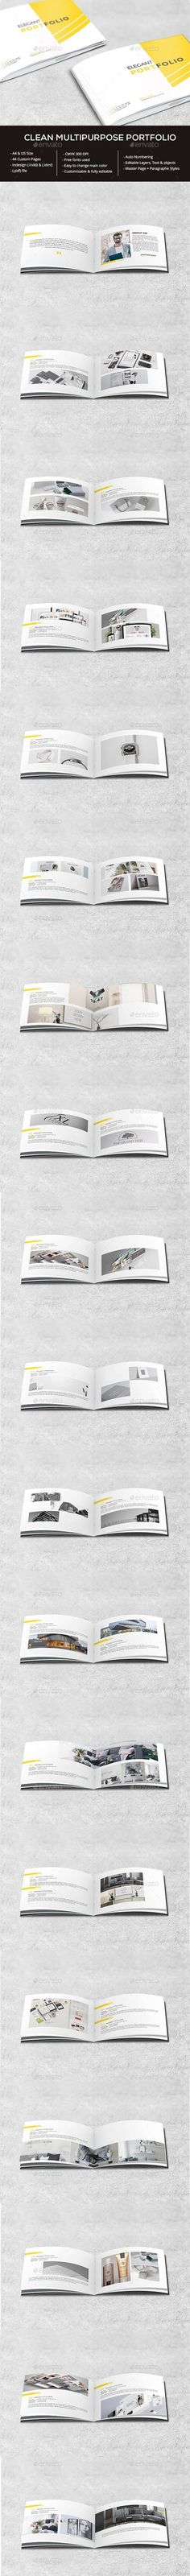 Clean Portofolio Portfolio Brochure Template by wpservicios. Design Brochure, Travel Brochure, Business Brochure, Brochure Template, Print Design, My Design, Print Templates, Design Templates, Designs To Draw